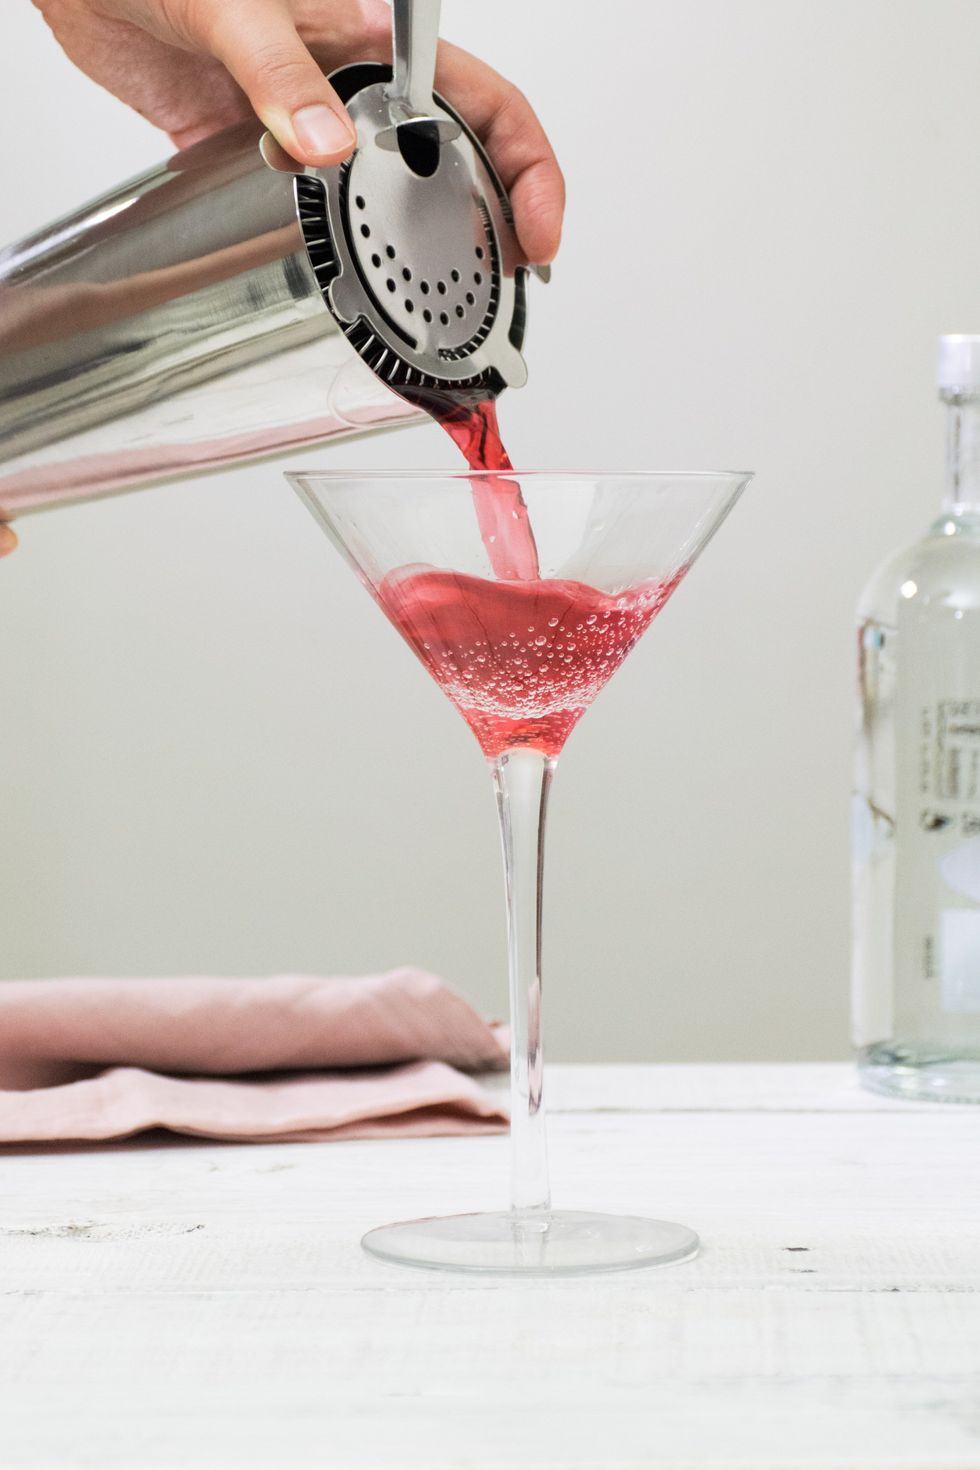 The Raspberry Lemon Drop Martini Is My Summer Go-To Drink — Here's My Recipe